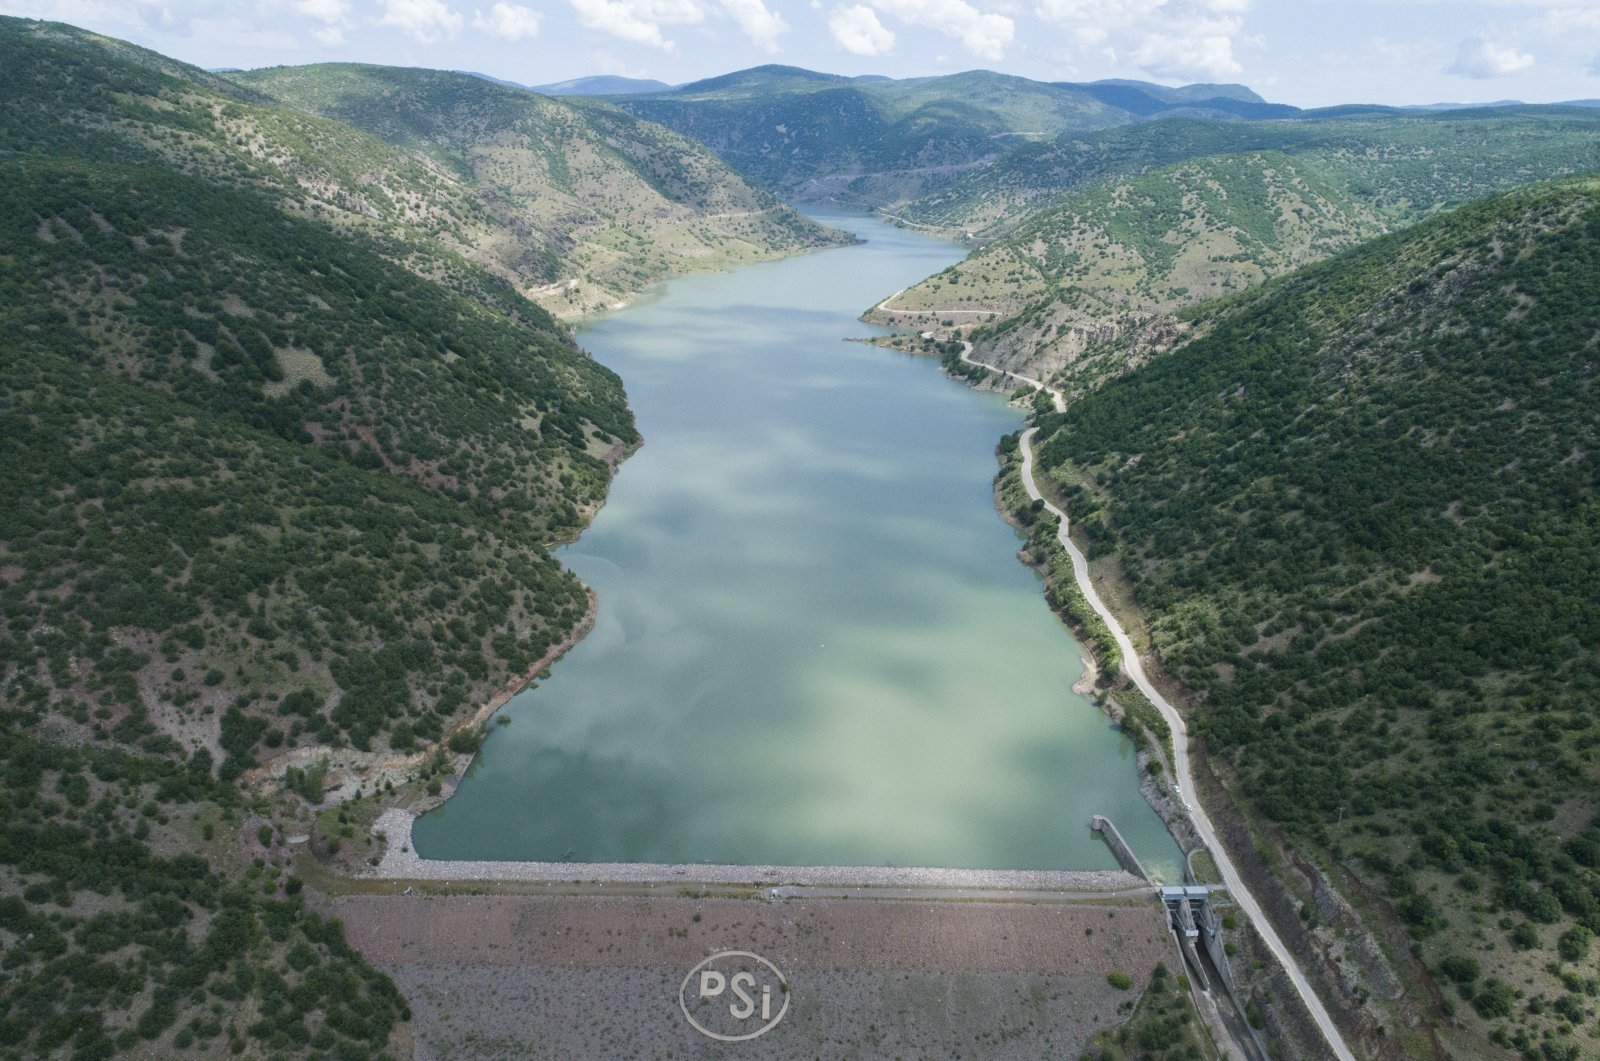 According to Pakdemirli, water levels in Istanbul's dams are currently enough to supply the city for seven months without any rainfall. (AA Photo)